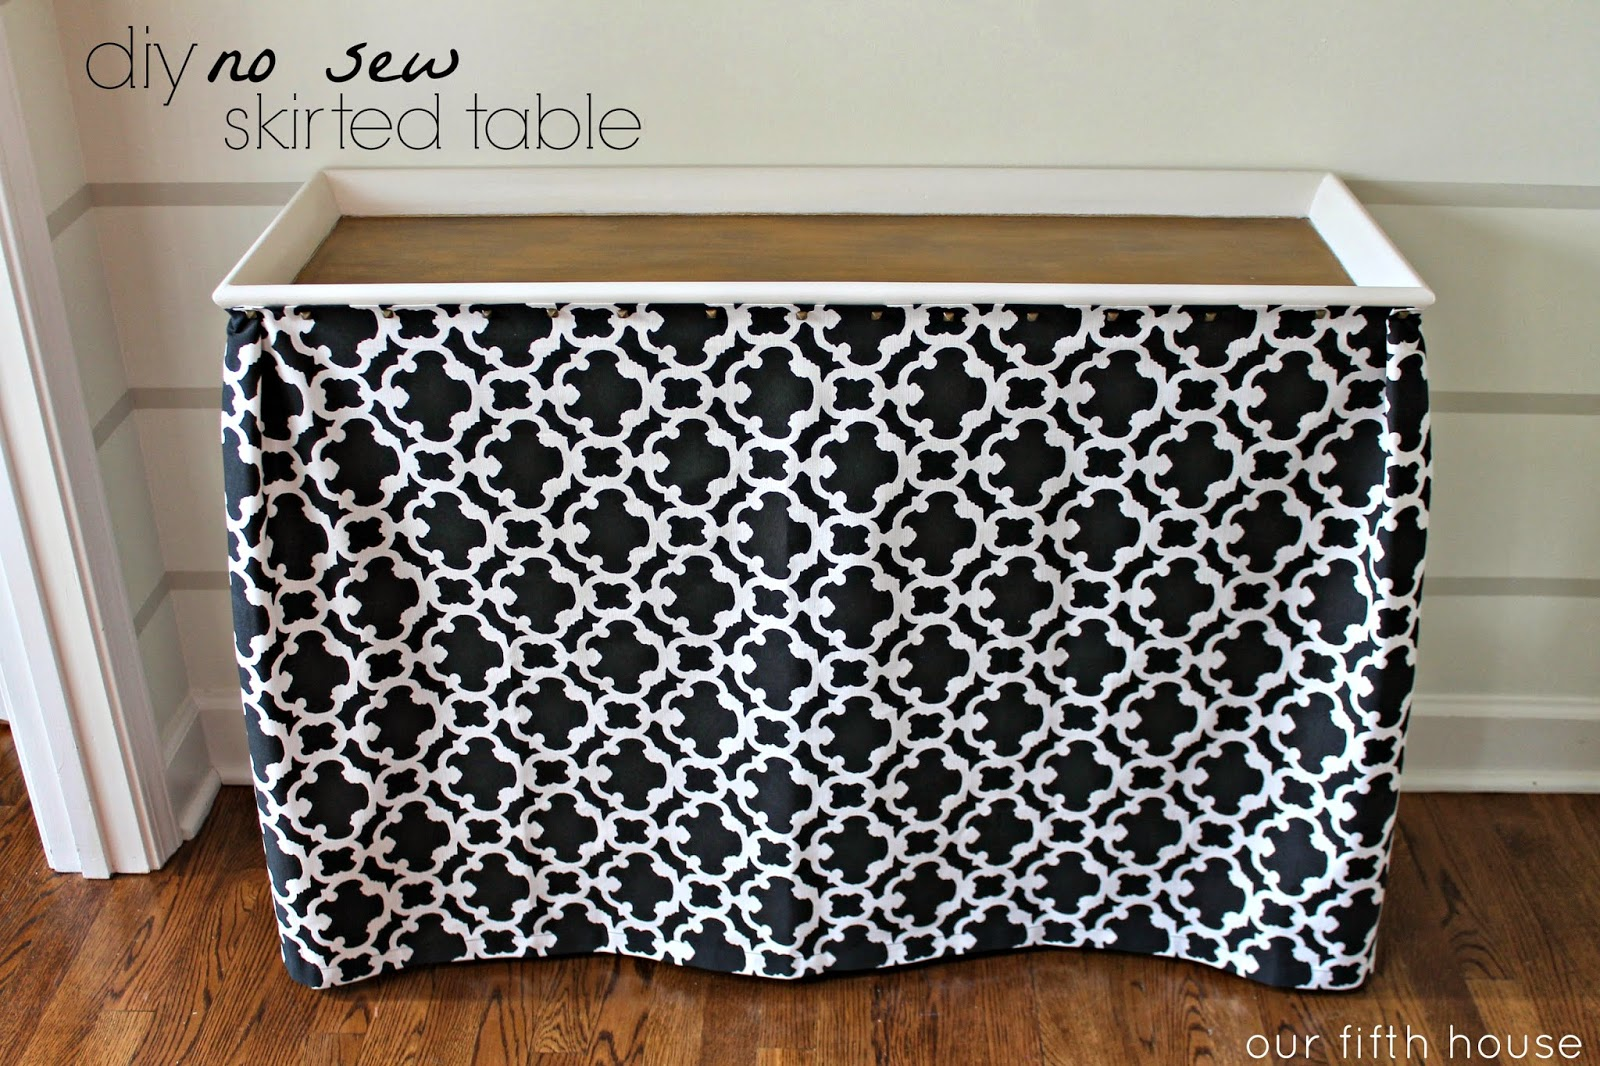 diy no sew skirted table